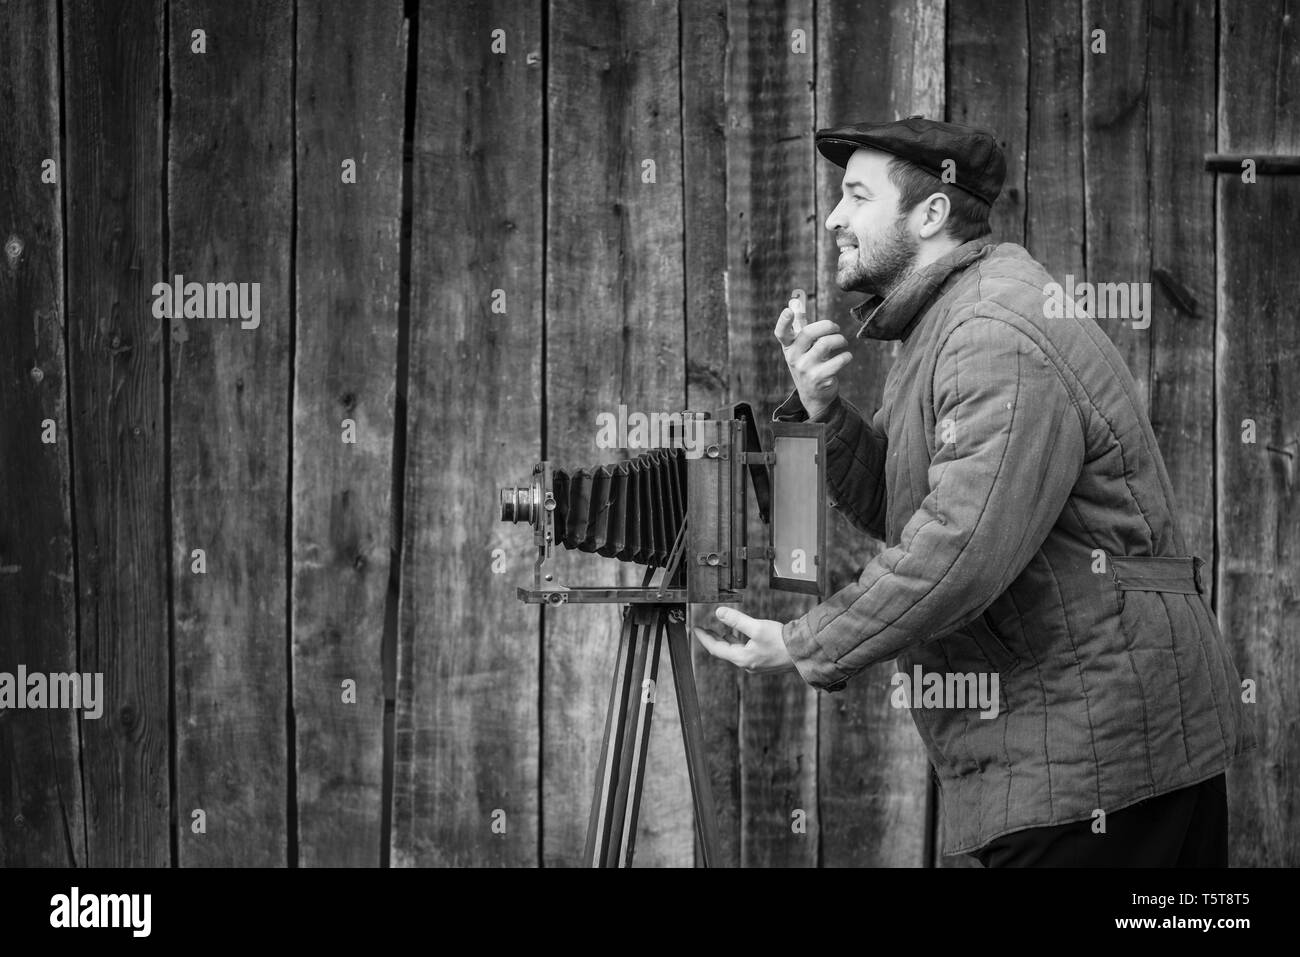 Old fashioned photographer asks for a smile. Works on large format camera. Concept - photography of the 1930s-1950s - Stock Image